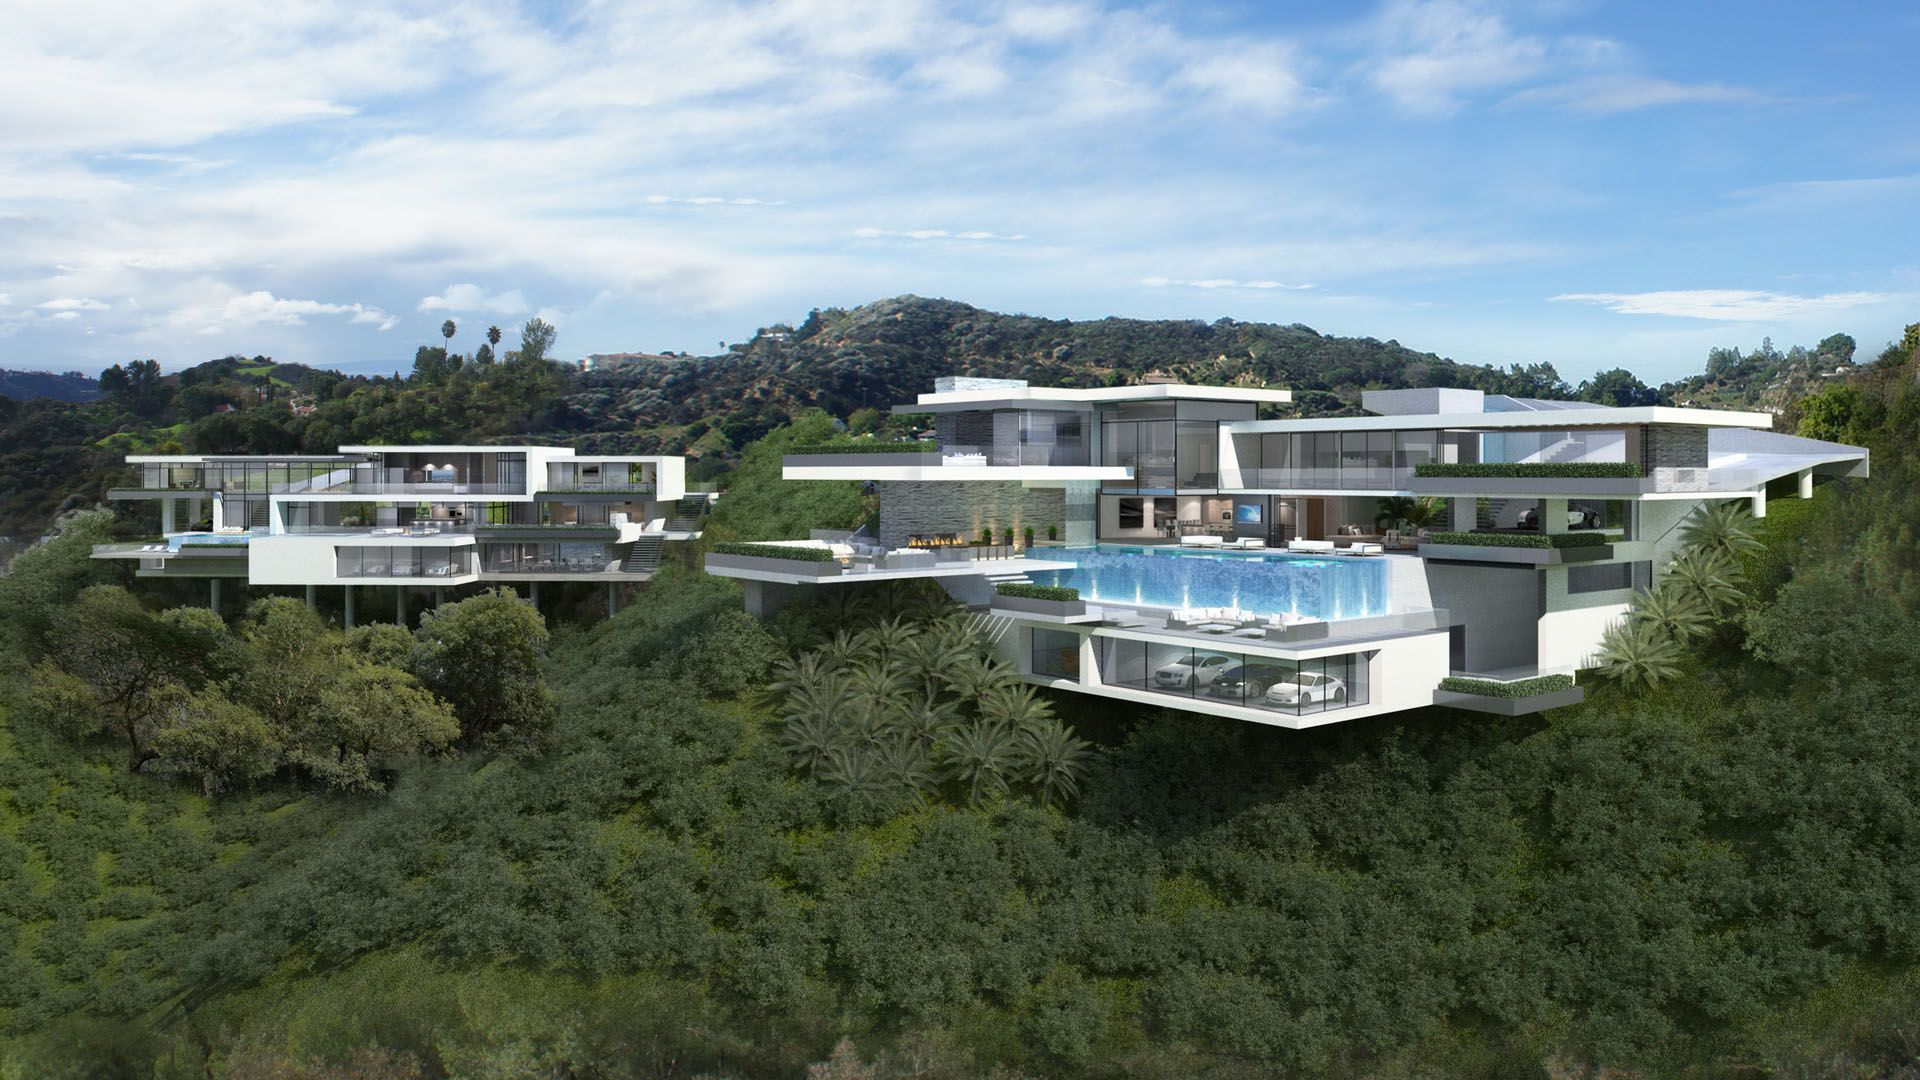 Breathtaking starlight mansion home plans in white color featuring modern stylish with glass and concrete material